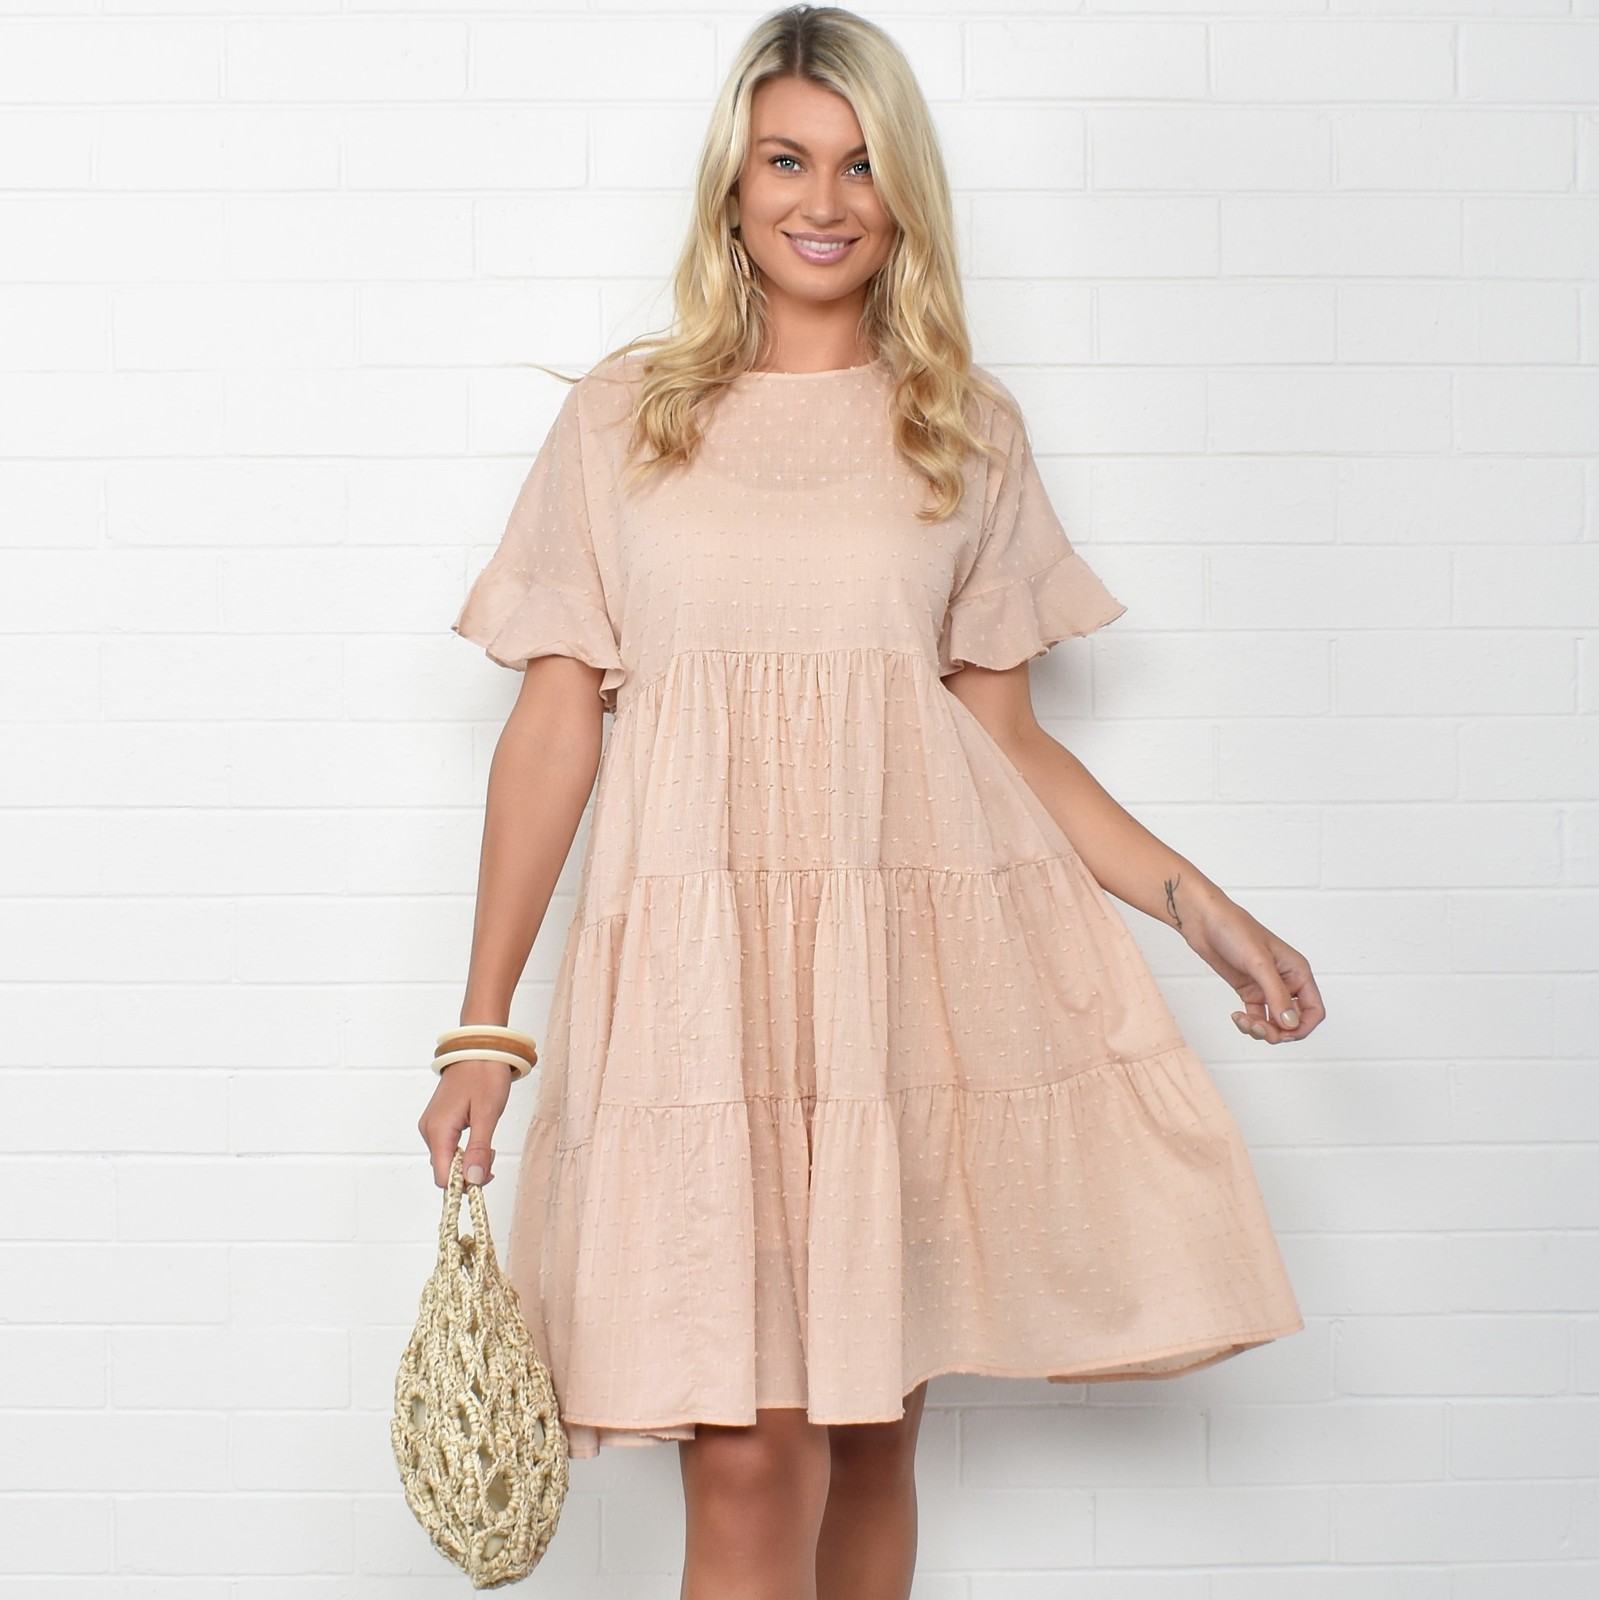 Adorne: Piper Frill Dress Nude - S/M image